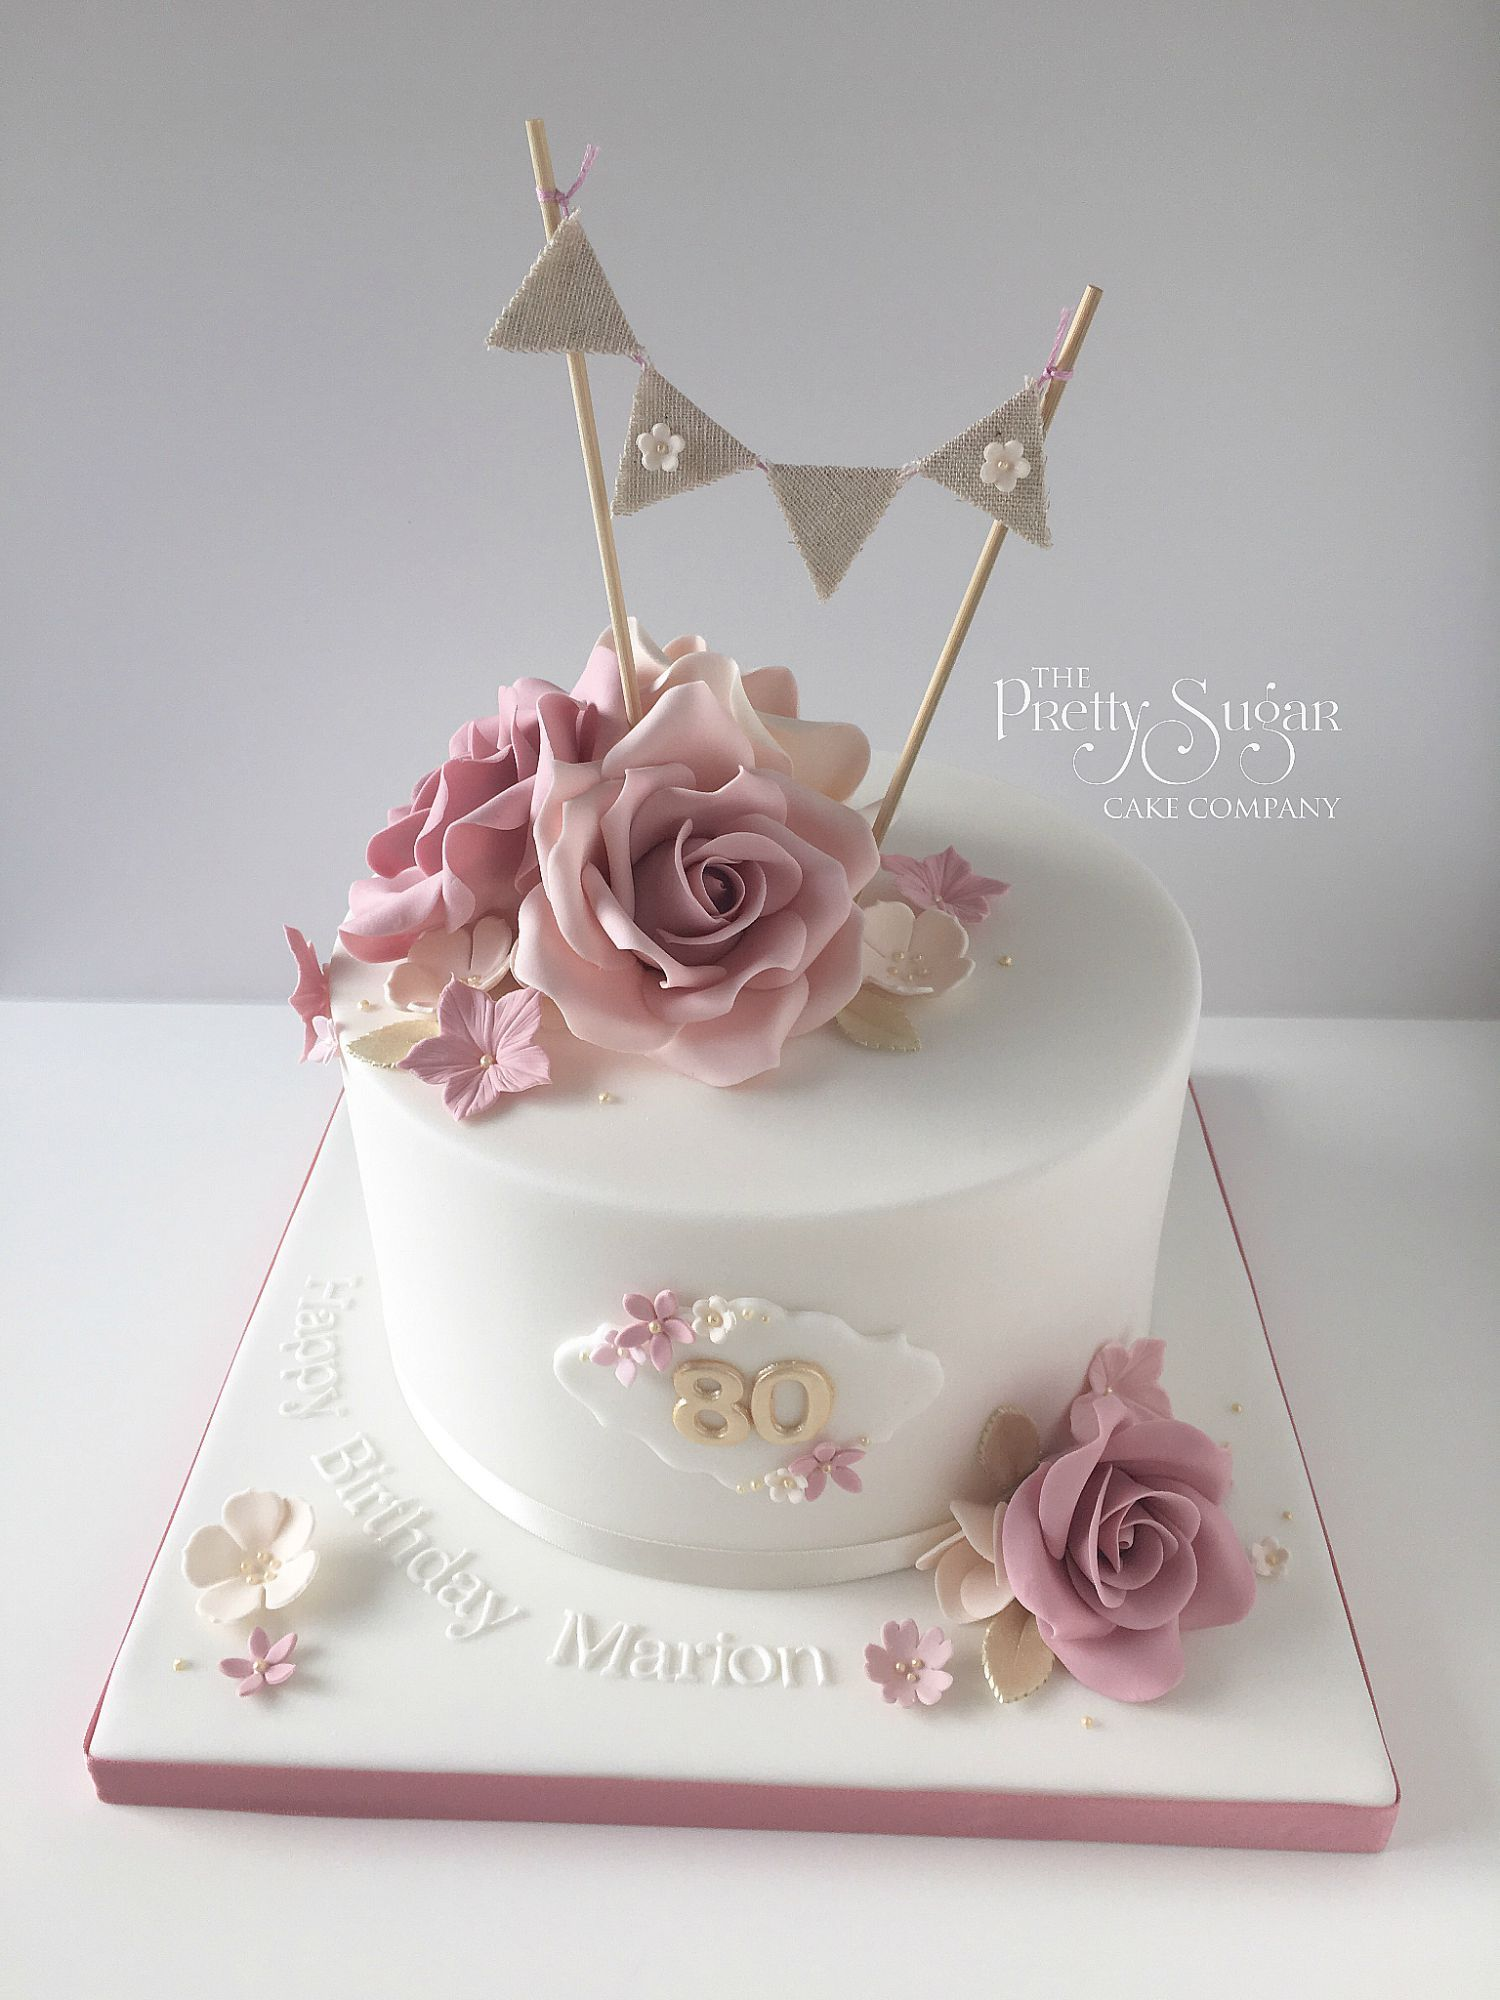 Vintage Style 80th Birthday Cake With Sugar Roses And